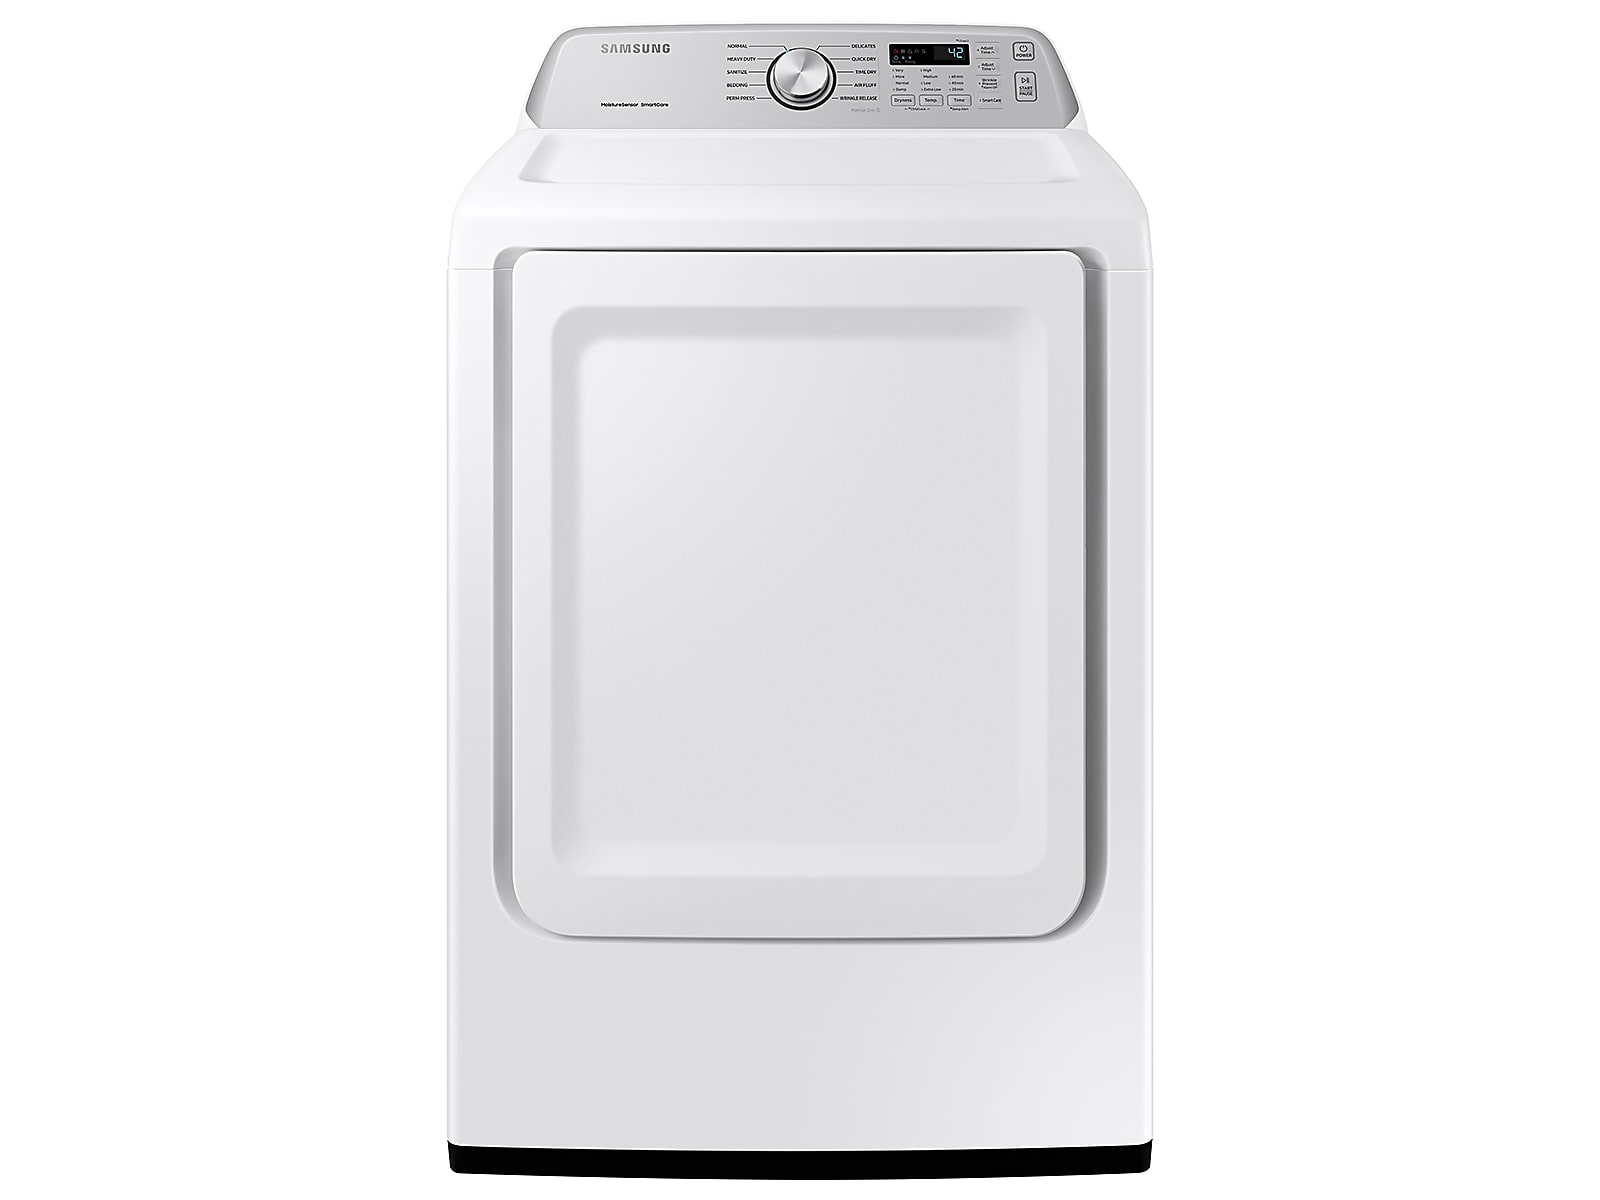 Samsung coupon: Samsung 7.4 cu. ft. Gas Dryer with Sensor Dry in White(DVG45T3400W/A3)